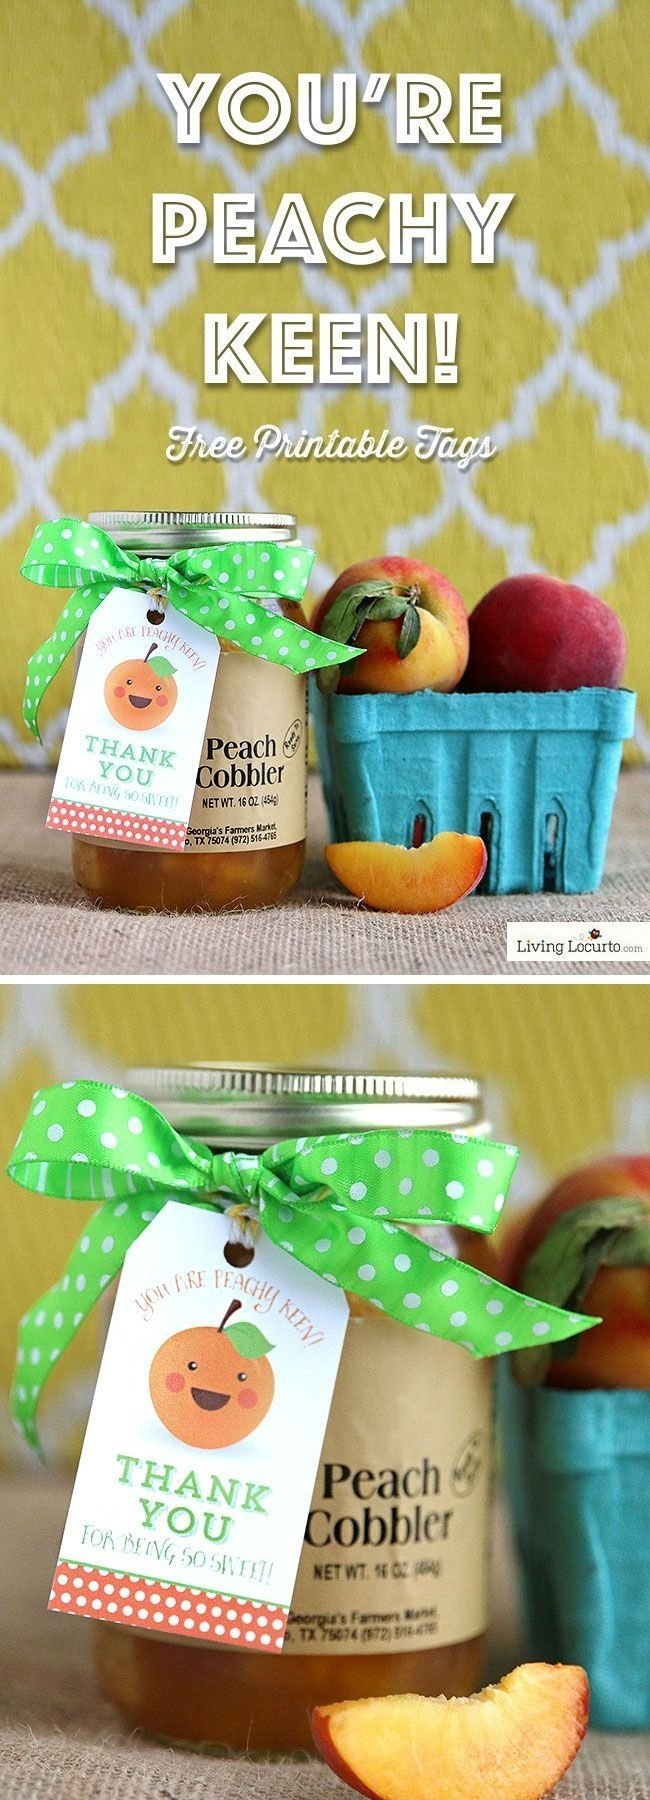 10 Awesome Diy Thank You Gift Ideas 1360 best diy handmade gifts images on pinterest creative ideas 2